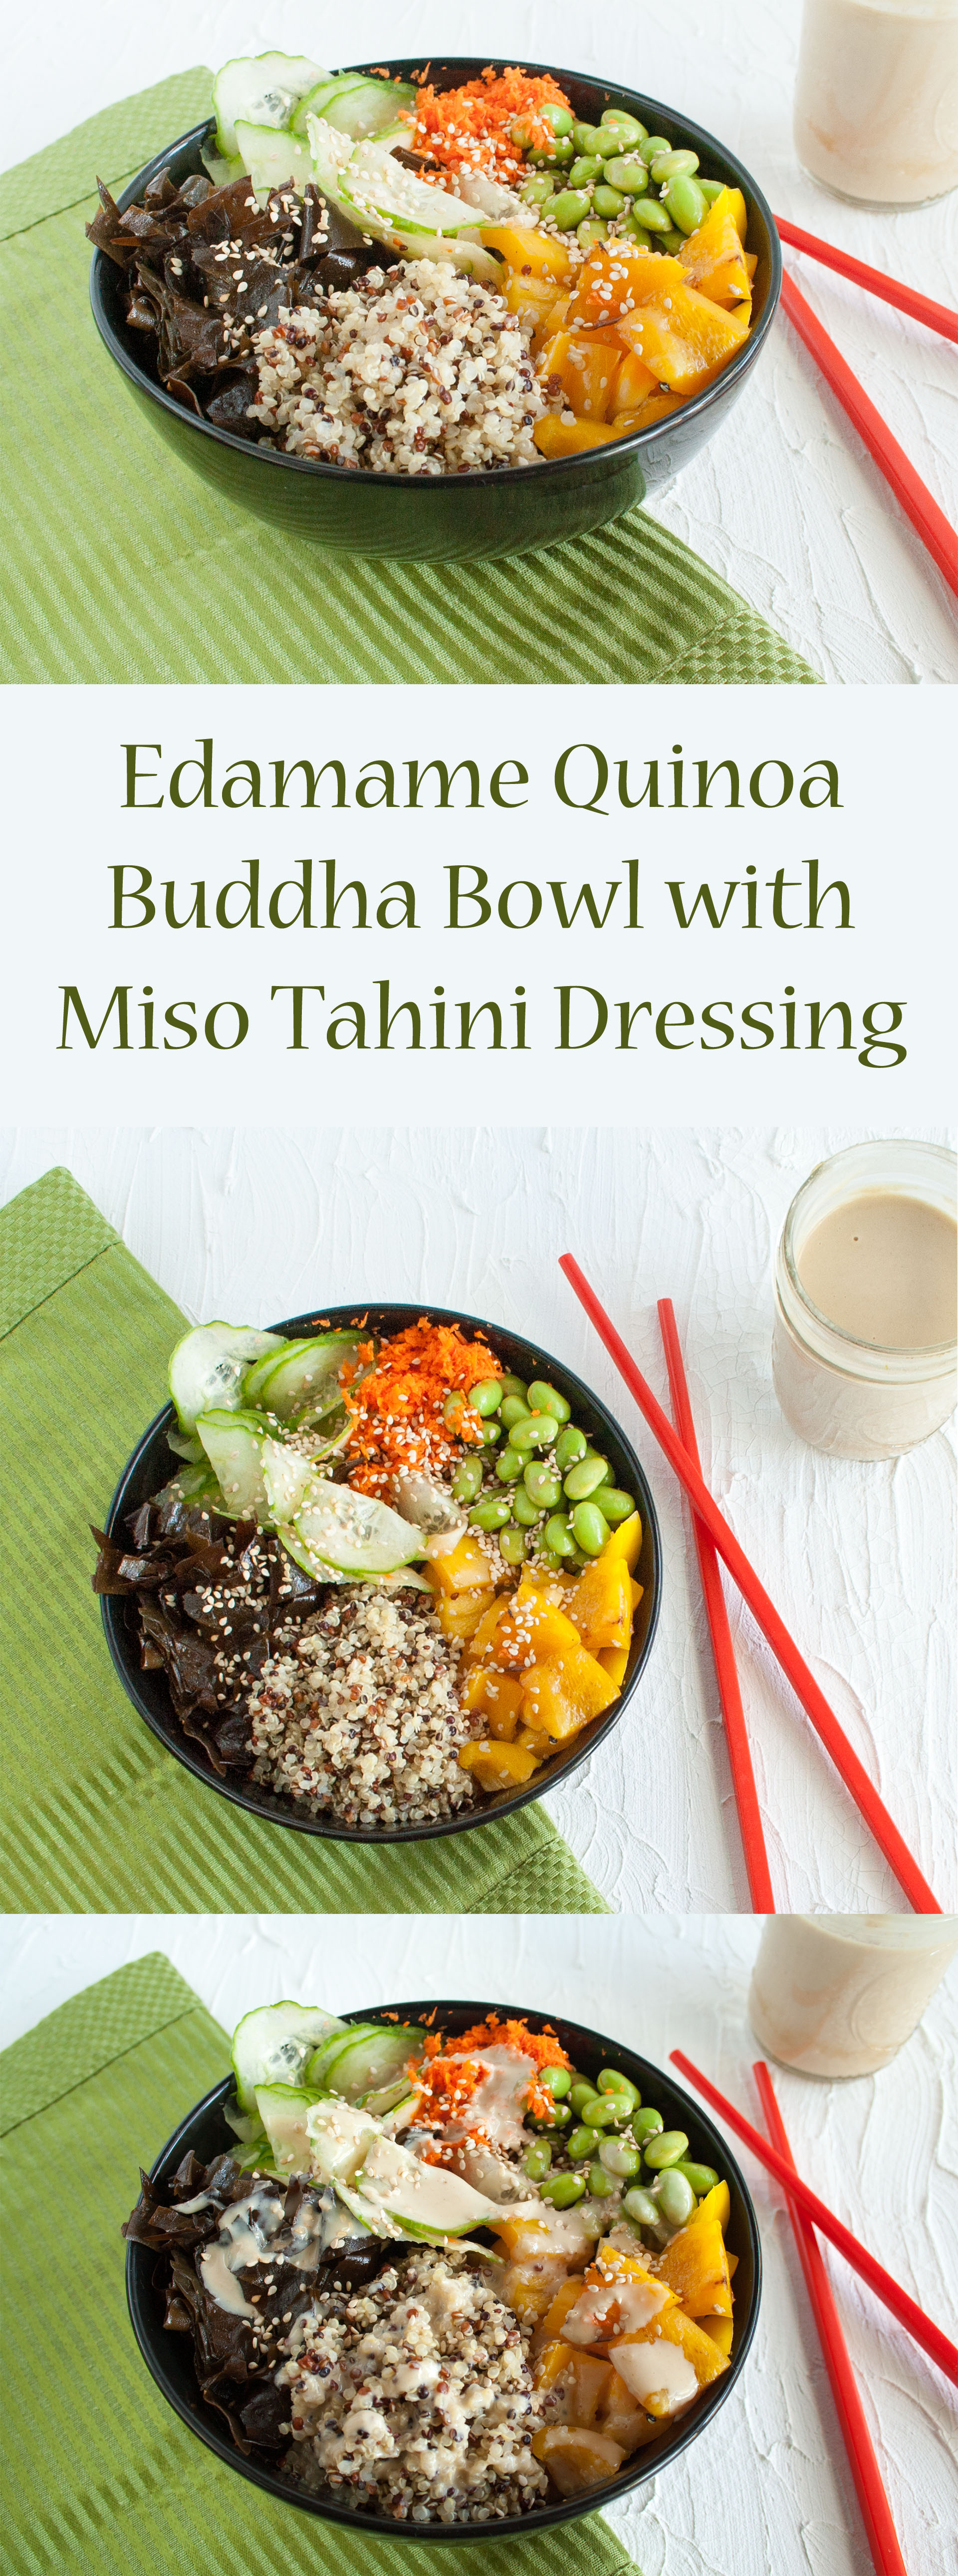 Edamame Quinoa Buddha Bowl with Miso Tahini Dressing collage photo with text.